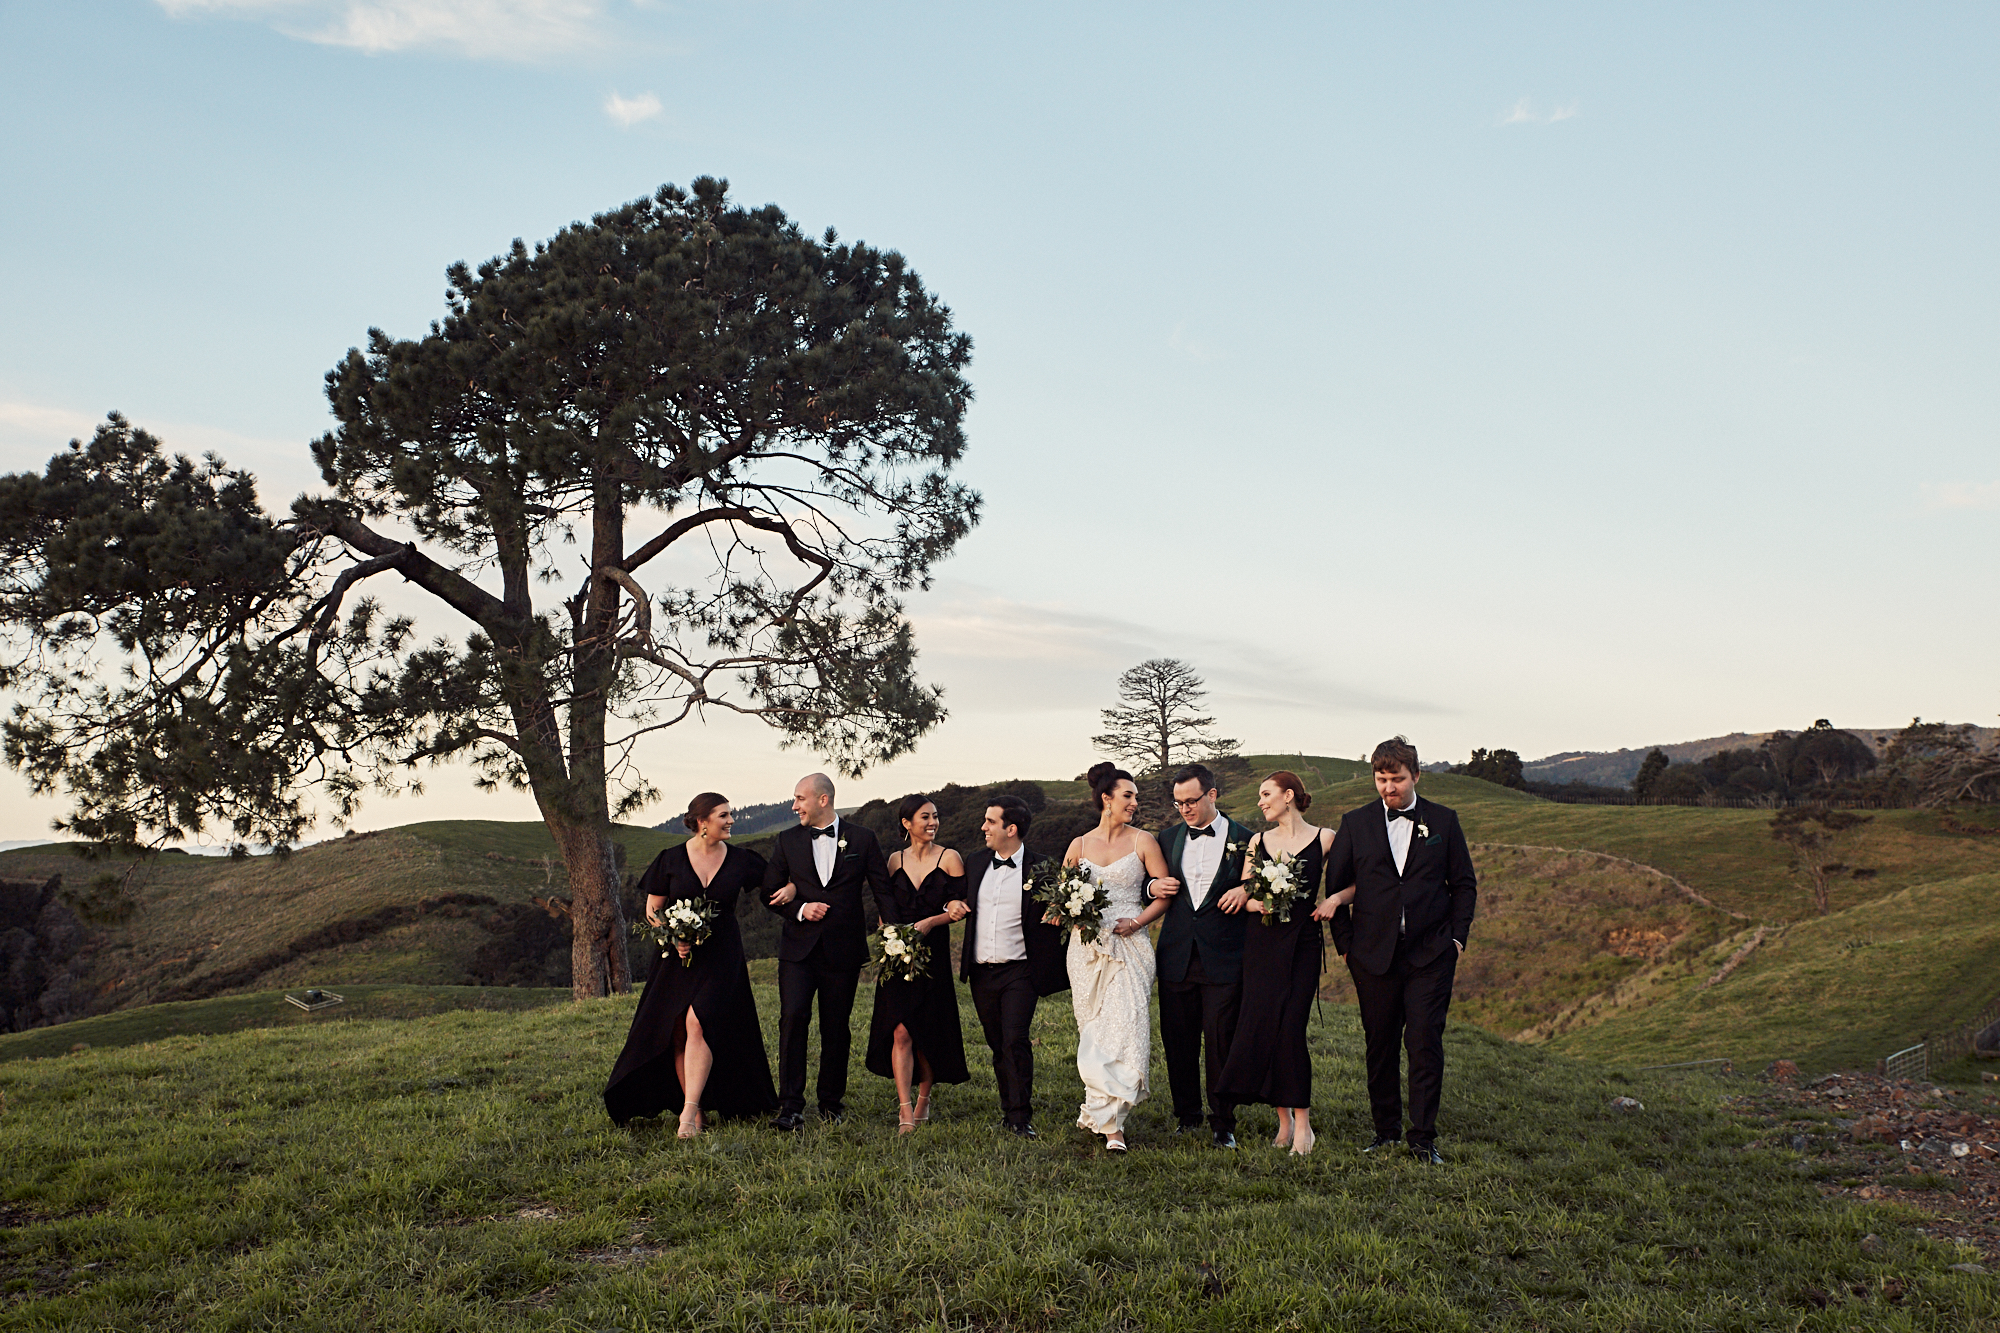 Wedding photographer at Kauri Bay Boomrock